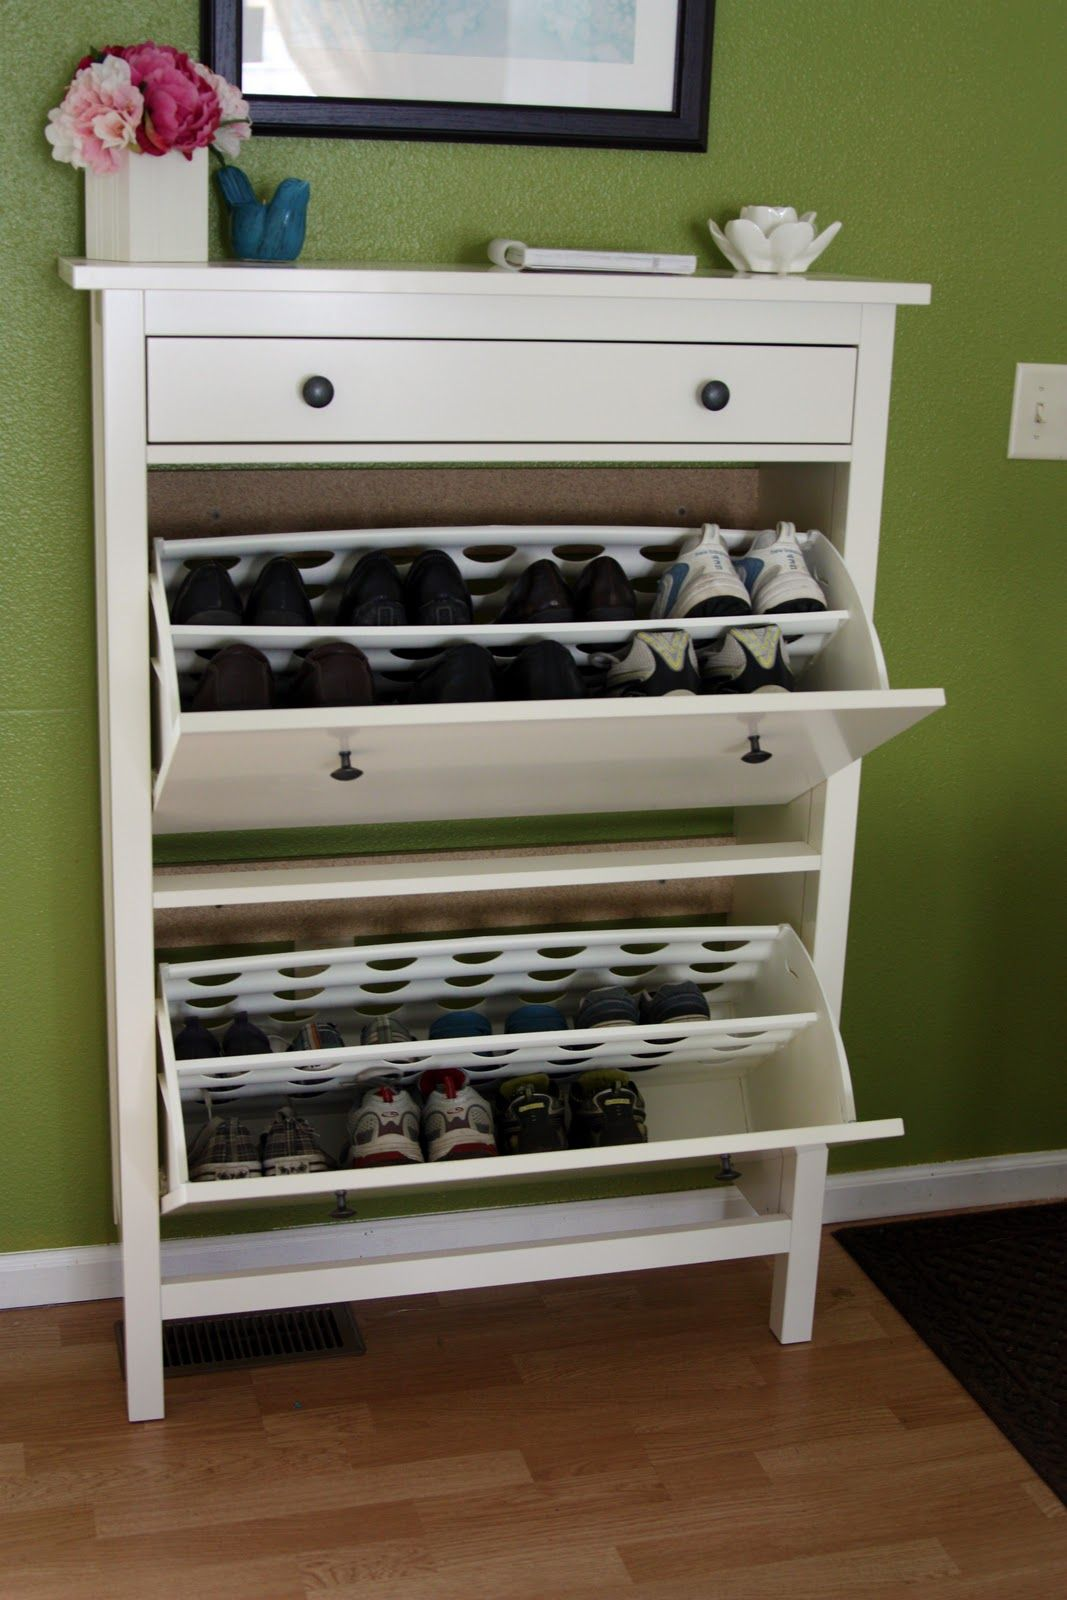 how to organise kitchen cabinets 10 smart ways to keep shoes tidy clutter organizing and 7292